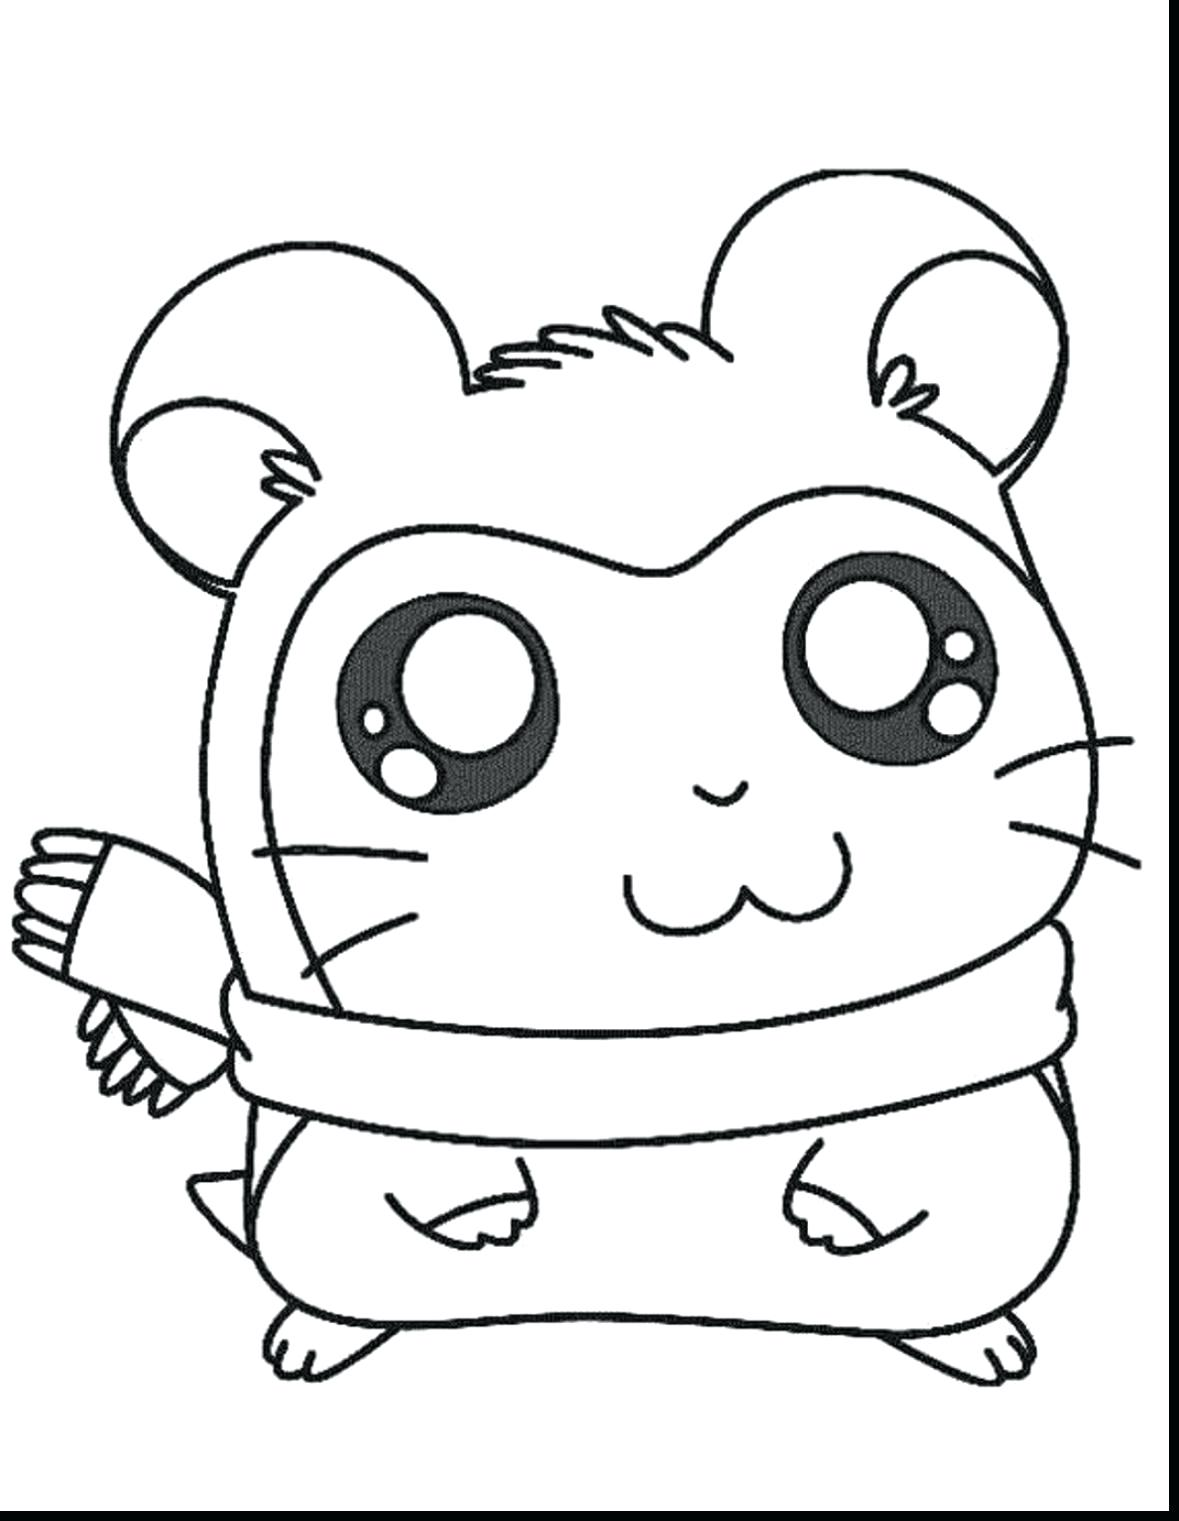 1179x1521 Coloring Guinea Pig Coloring Page Wonderful Pages Of Pigs Cute